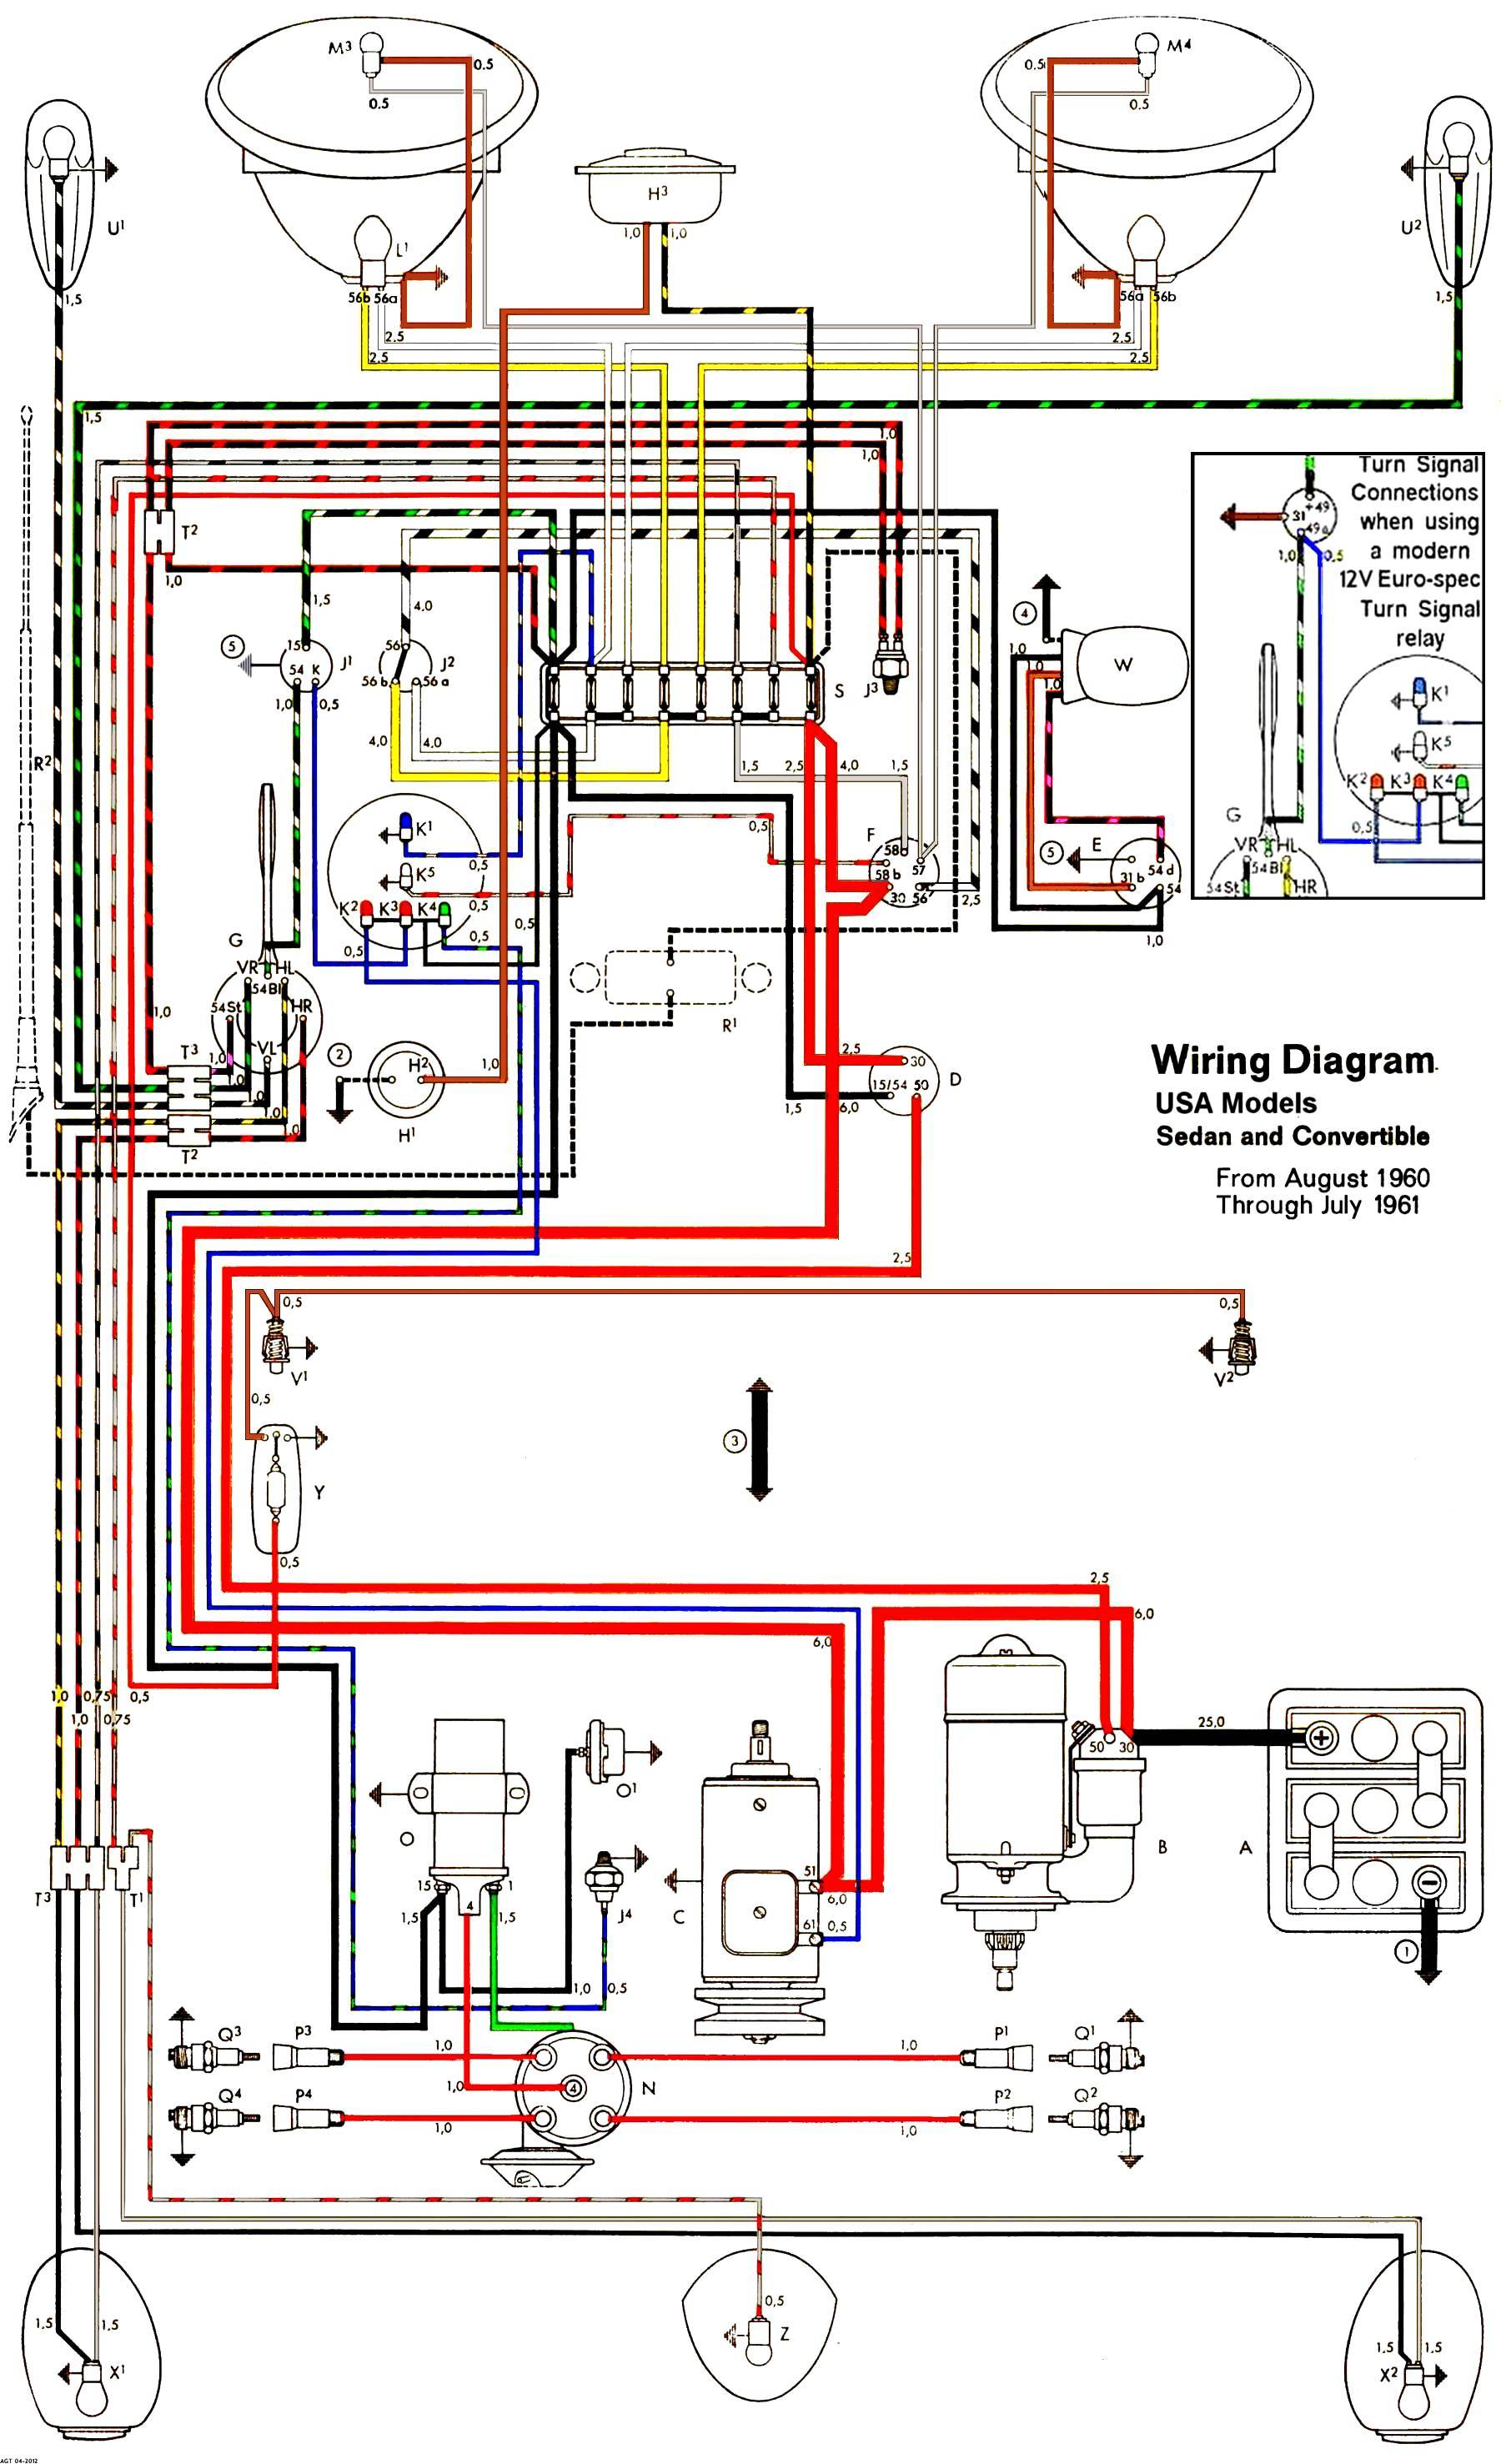 4 Wire Wiring Diagram Datajack | wiring diagram panel  Wire Wiring Diagram Datajack on 4 wire solenoid, 4 wire headlight, 4 wire transformer, 4 wire furnace diagram, 4 wire plug, 4 wire alternator, 4 wire coil, 4 wire electrical wiring, 4 wire parts, 4 wire regulator, 4-way circuit diagram, 4 wire trailer diagram, 4 wire arduino diagram, 4 wire relay, 4 wire compressor, 4 wire circuit, 4 wire cable, 4 wire switch diagram, 4 wire fan diagram, 4 wire generator,